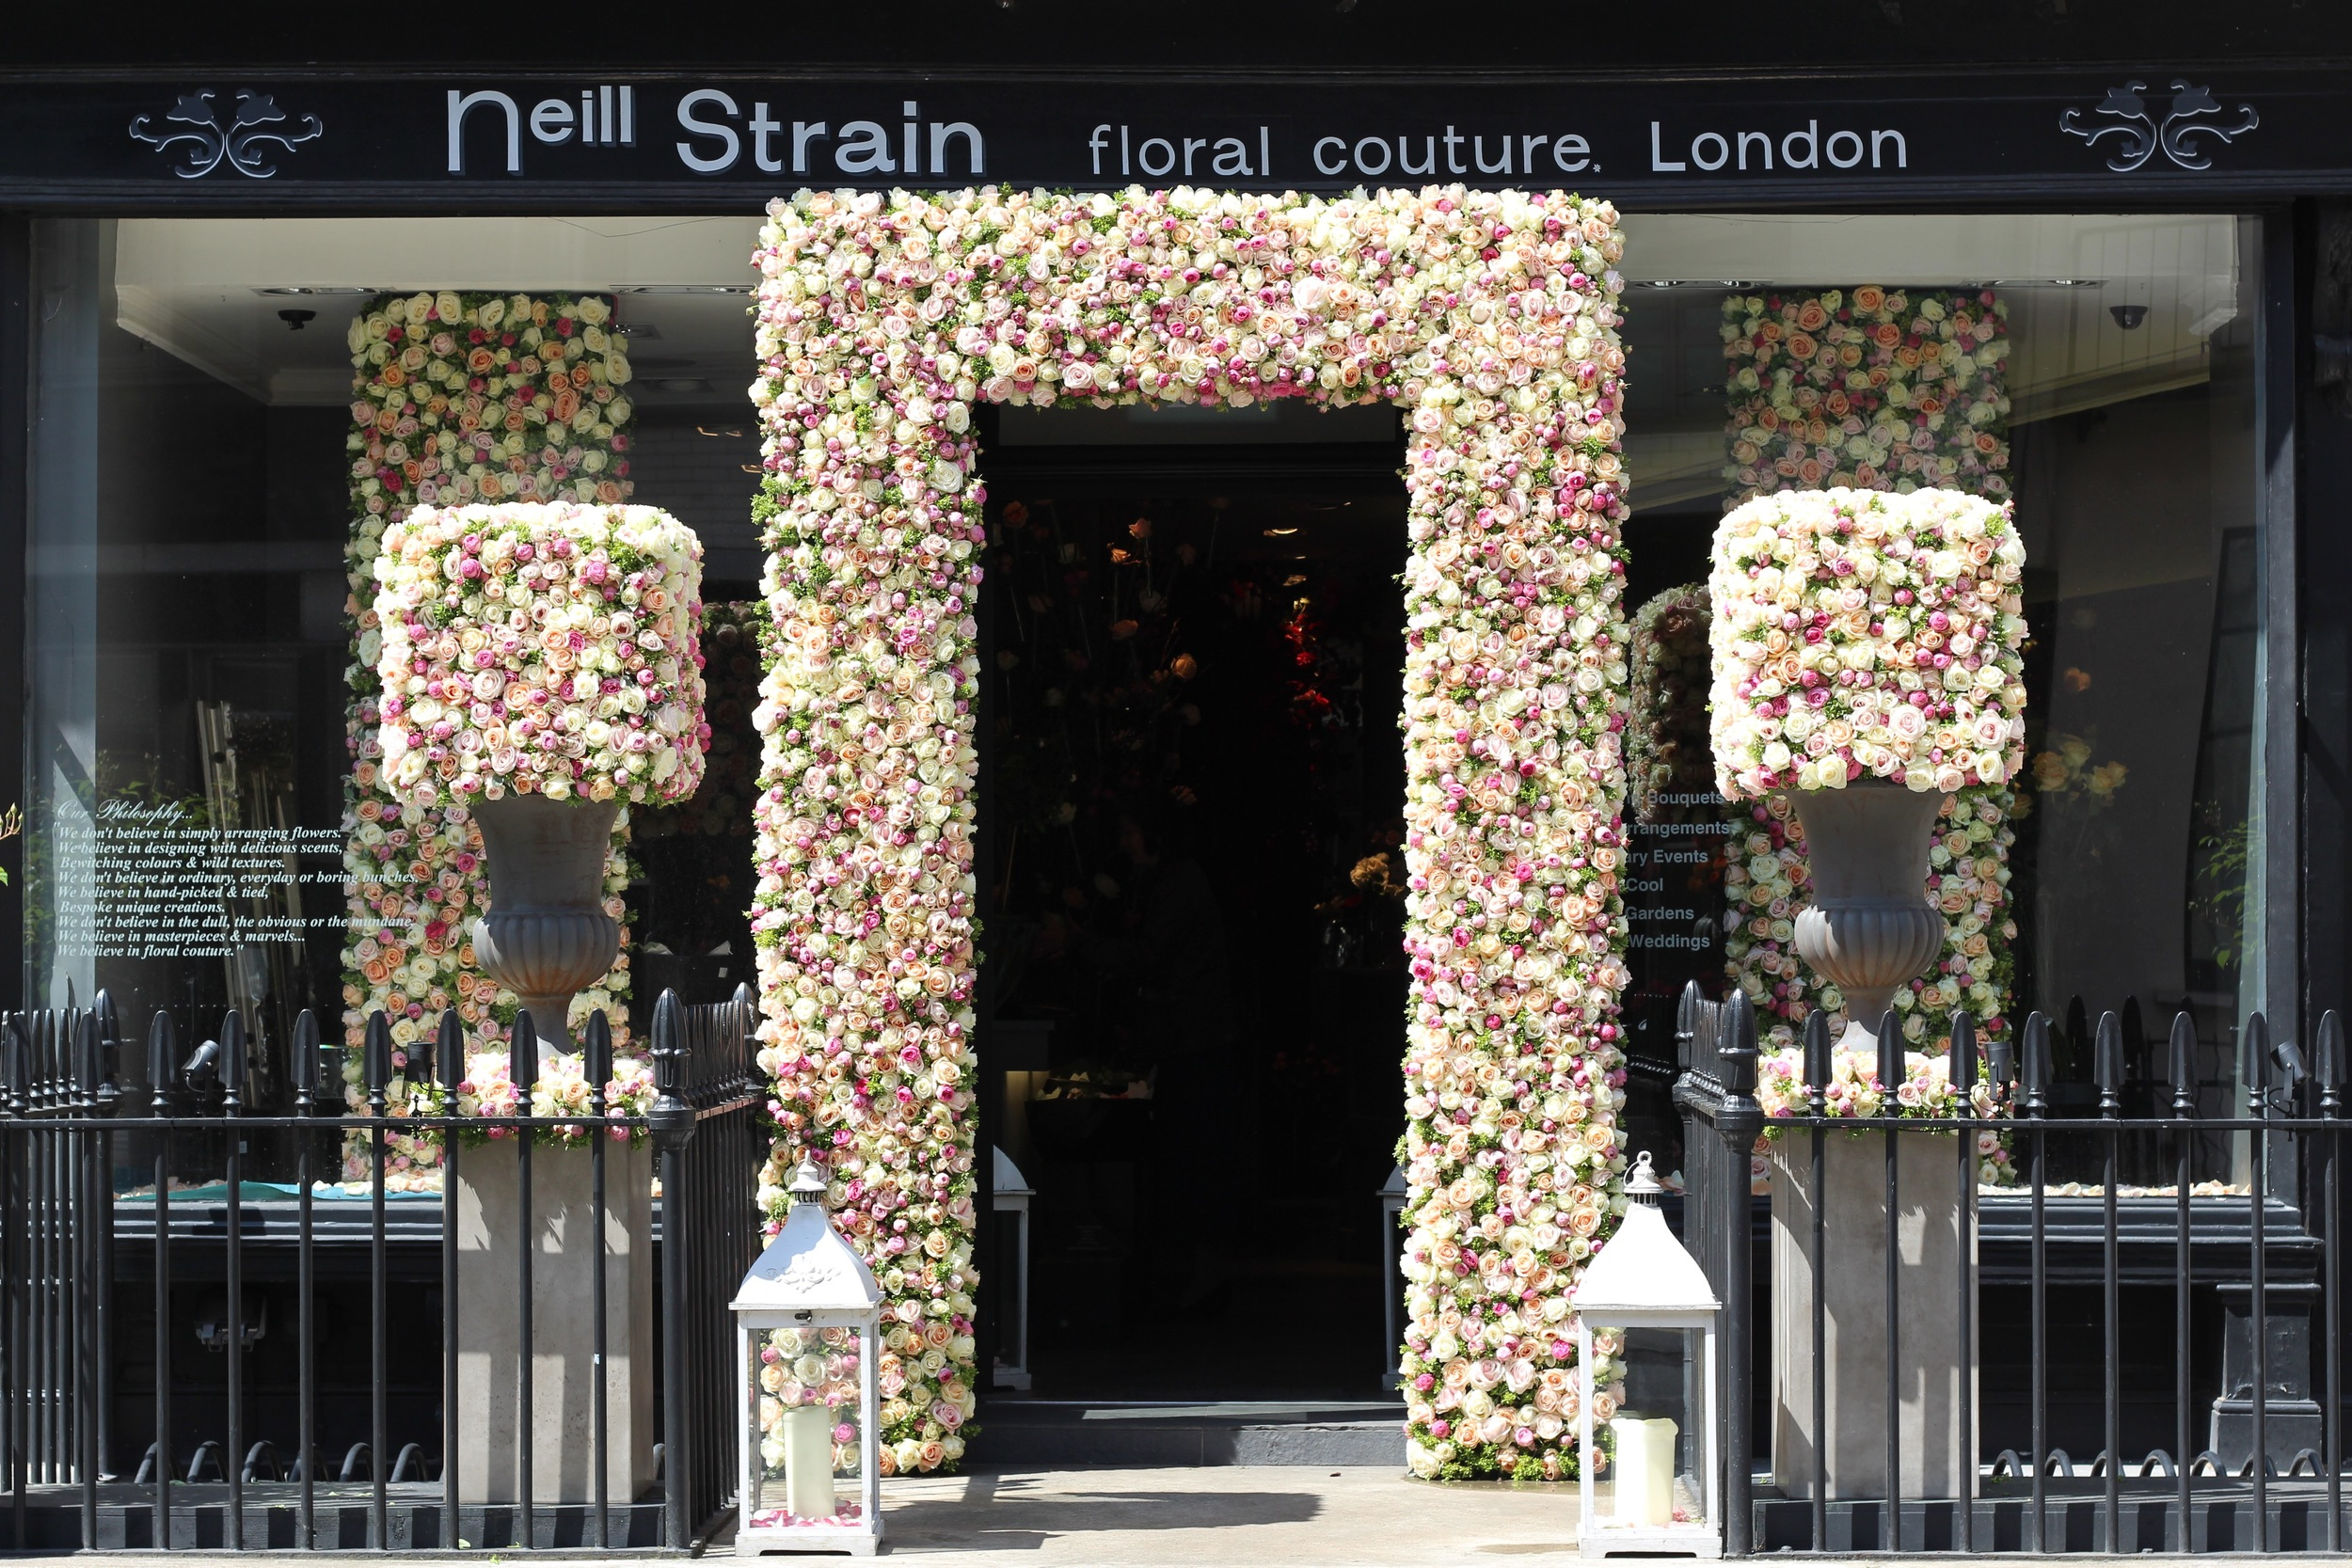 Floral installation at The Flower Lounge for Neill Strain's Celebration of the Rose